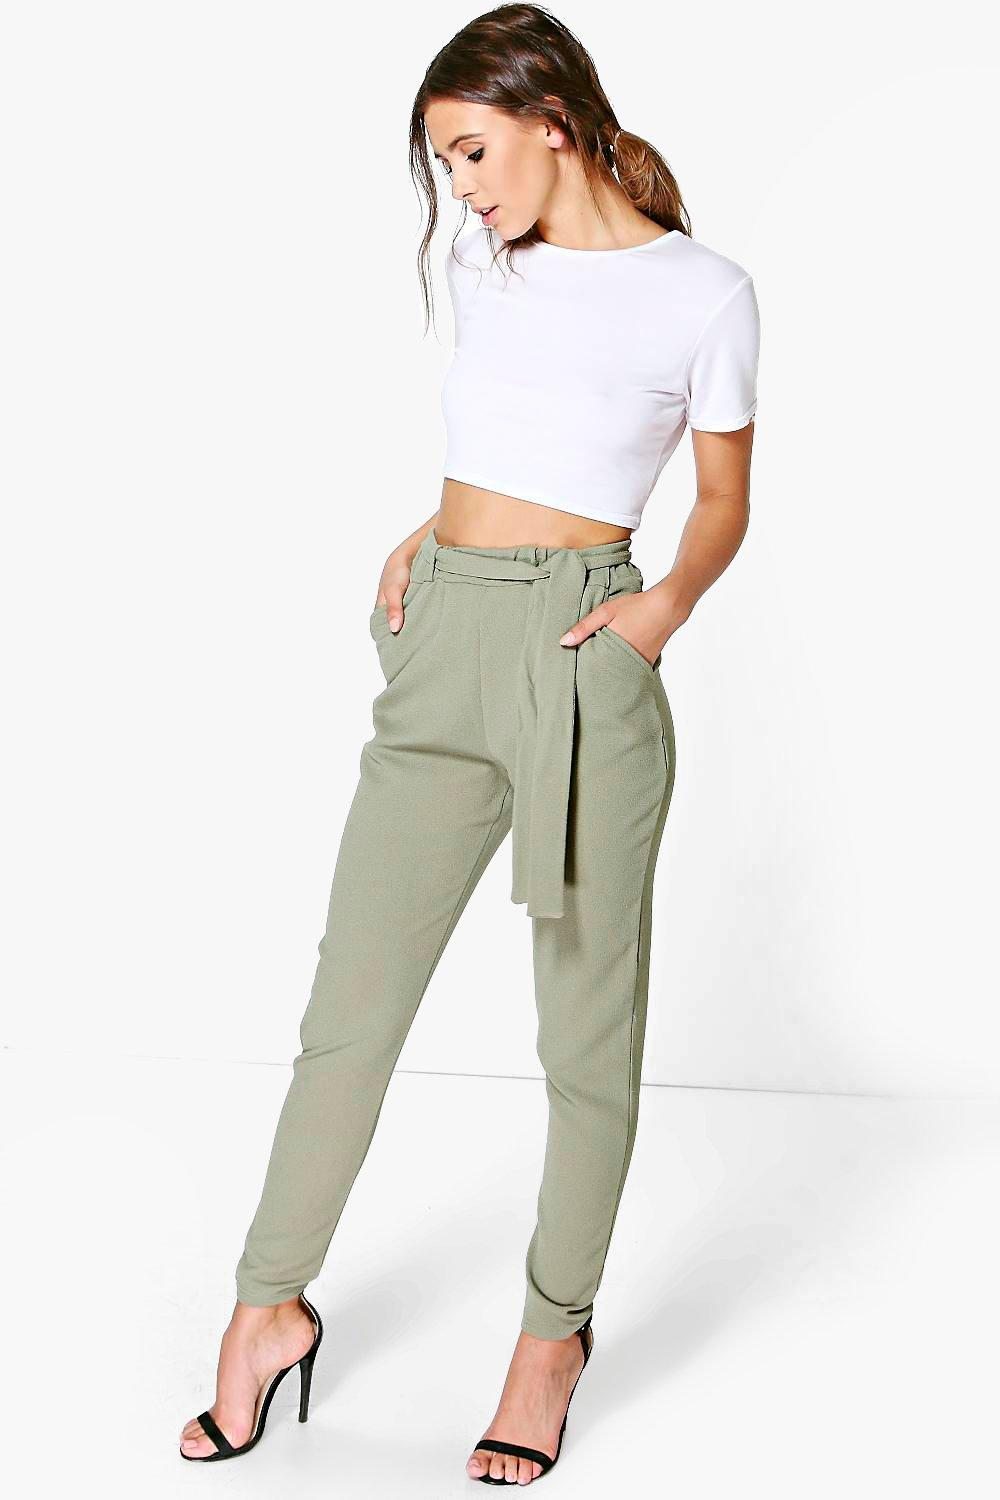 In the collection of womens pants by G-Star you'll find something for every occasion. Use the menu to select your womens pants The G-Star RAW online store will make selecting the right pair of pants a lot easier. Find your new pair of trousers by tailoring our full selection of womens pants .